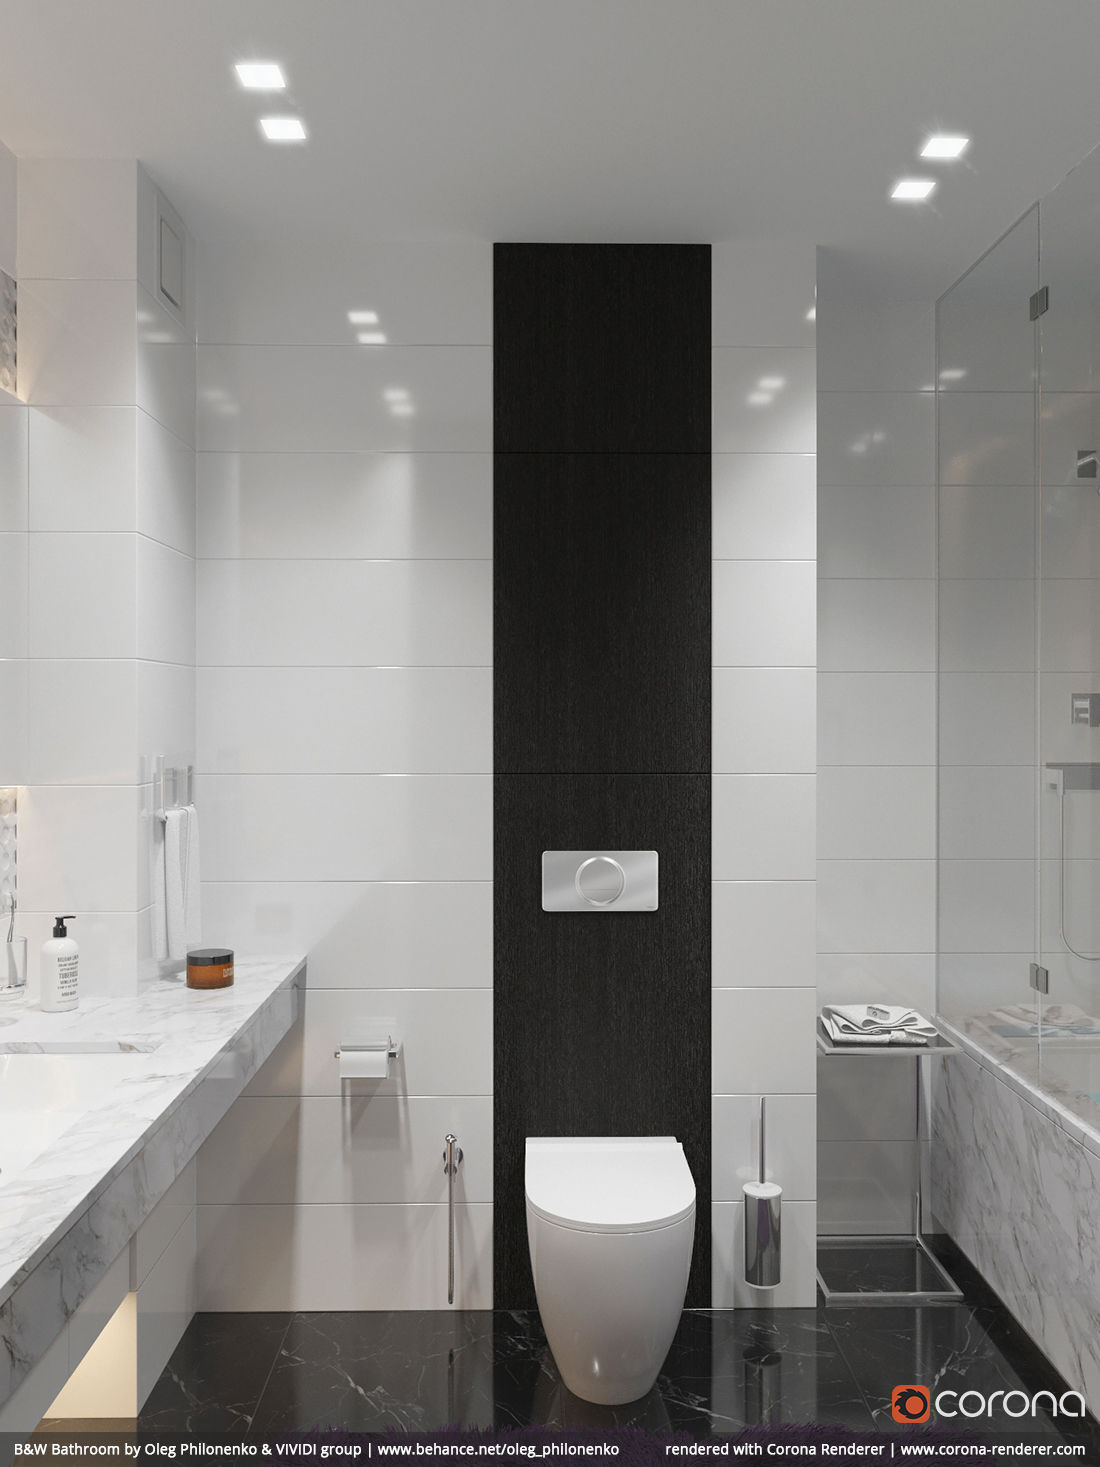 B&W Bathroom 05 by Oleg Philonenko & VIVIDI group